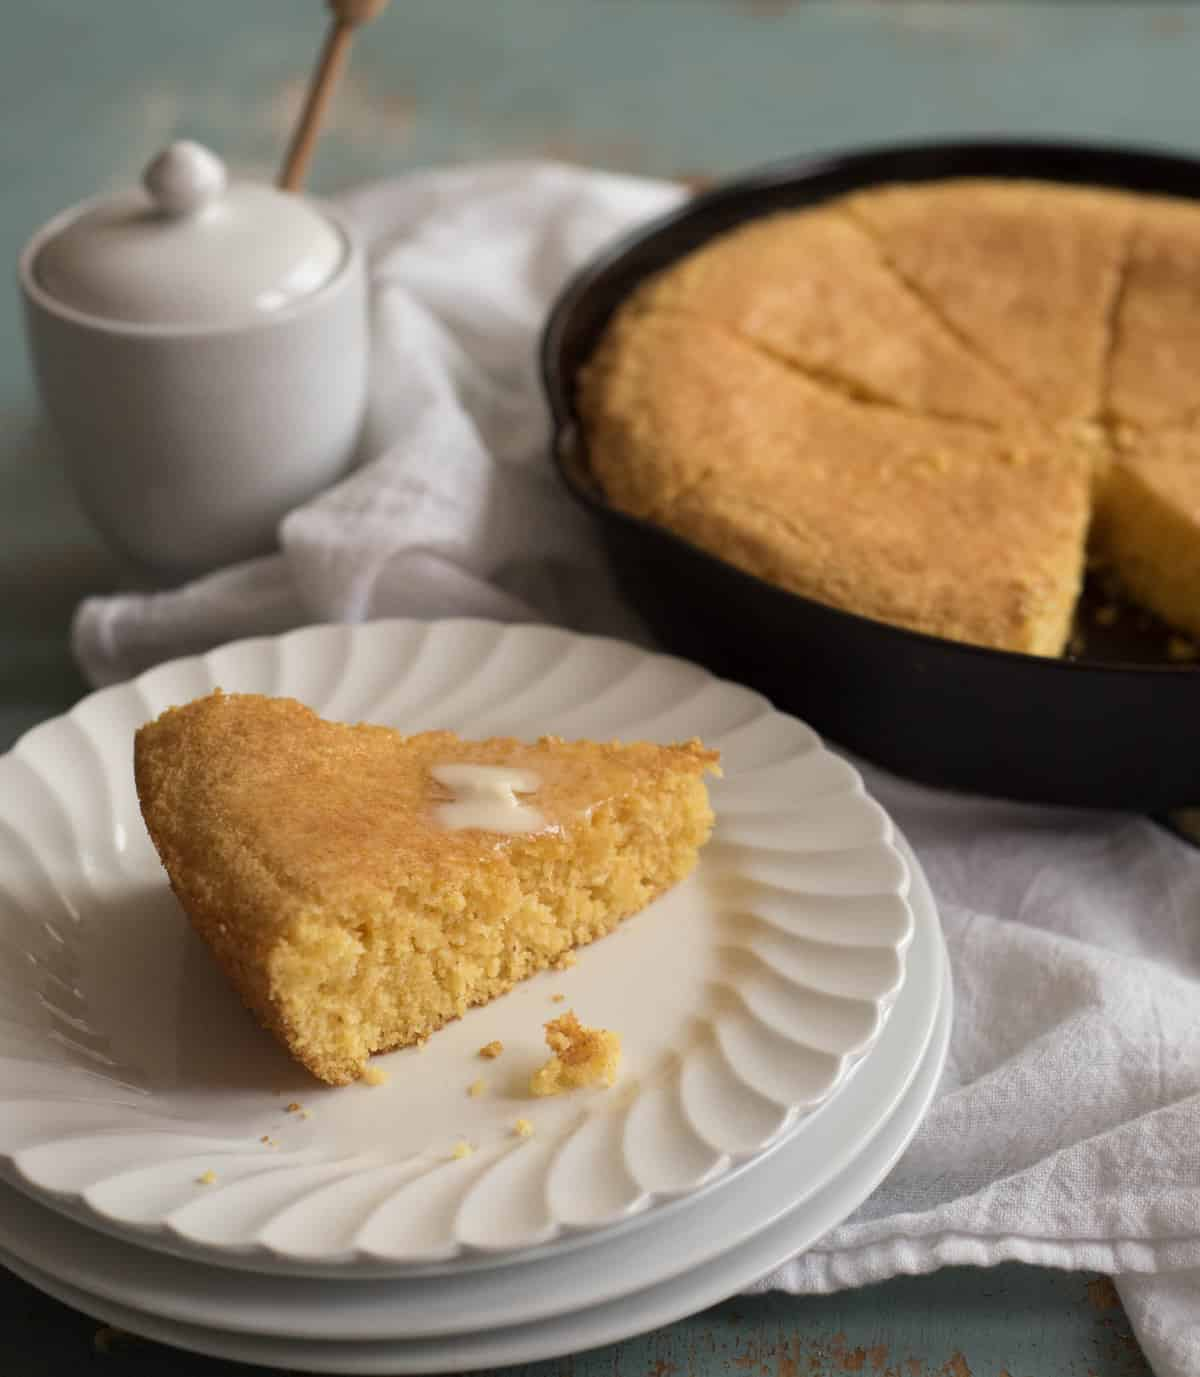 The best cornbread recipe that is sweet, fluffy, and perfect every time from a recipe that I've had for years using no special ingredients.